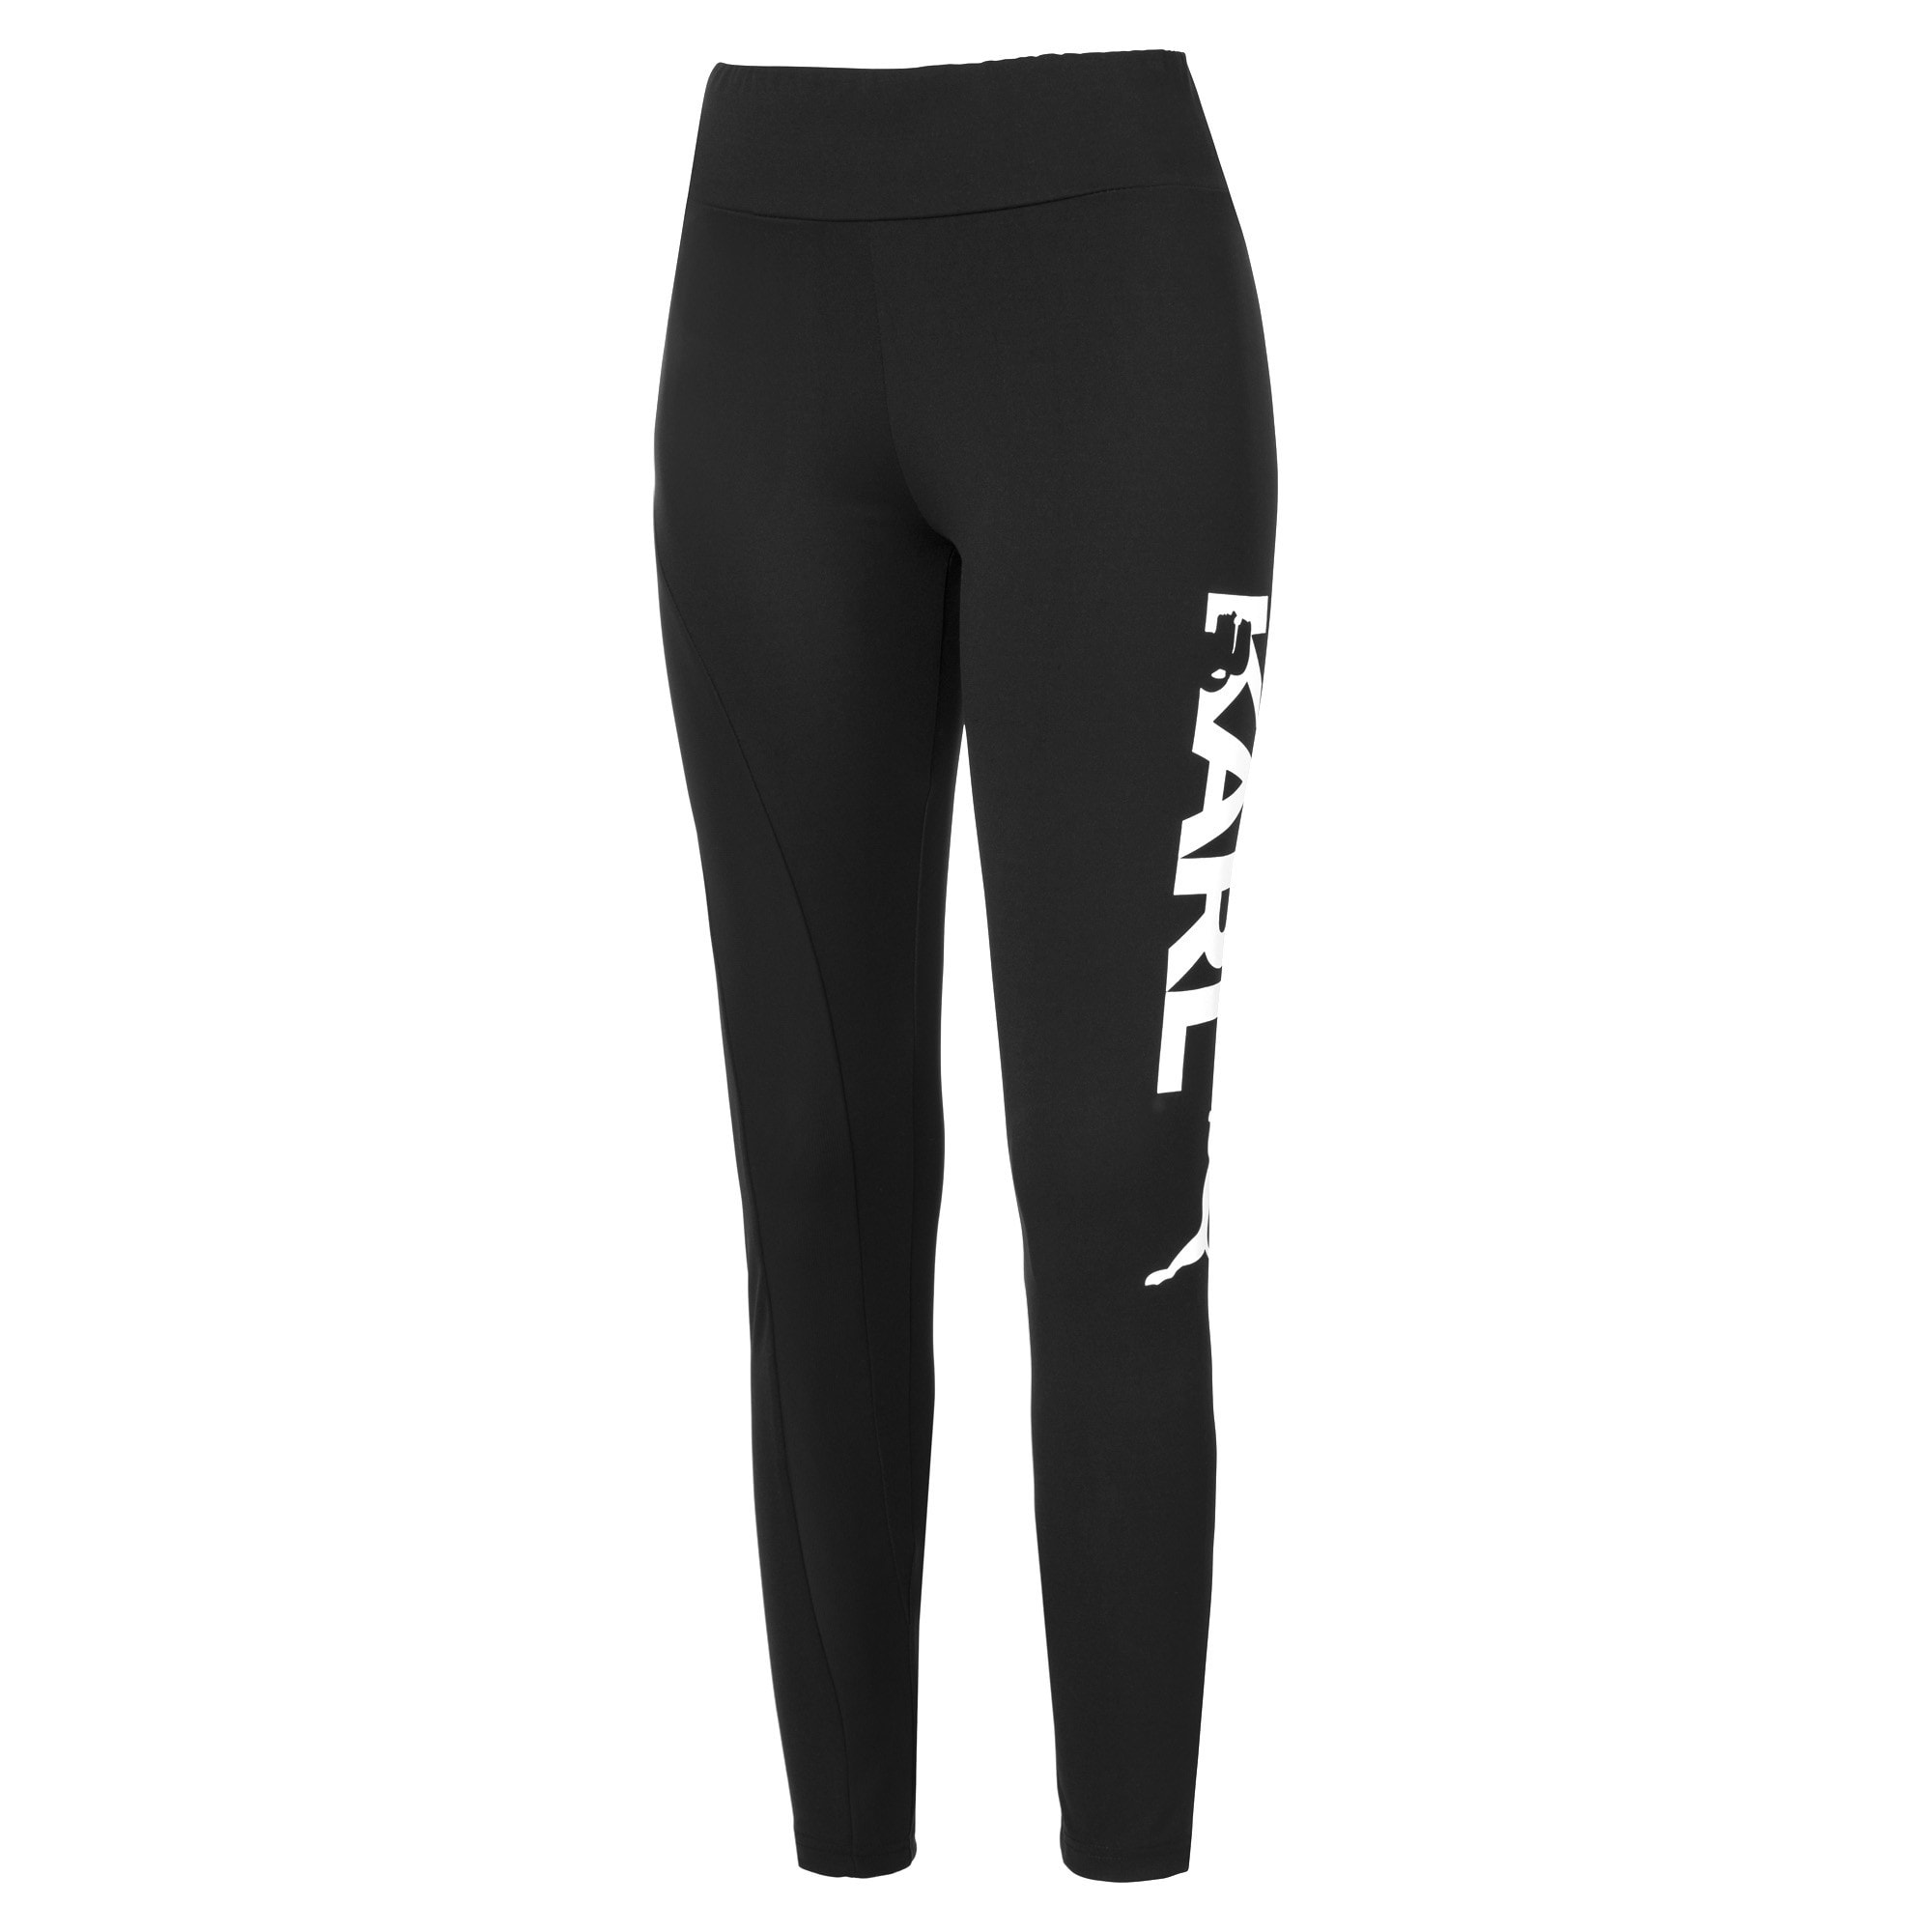 Thumbnail 4 of PUMA x KARL LAGERFELD Women's Leggings, Puma Black, medium